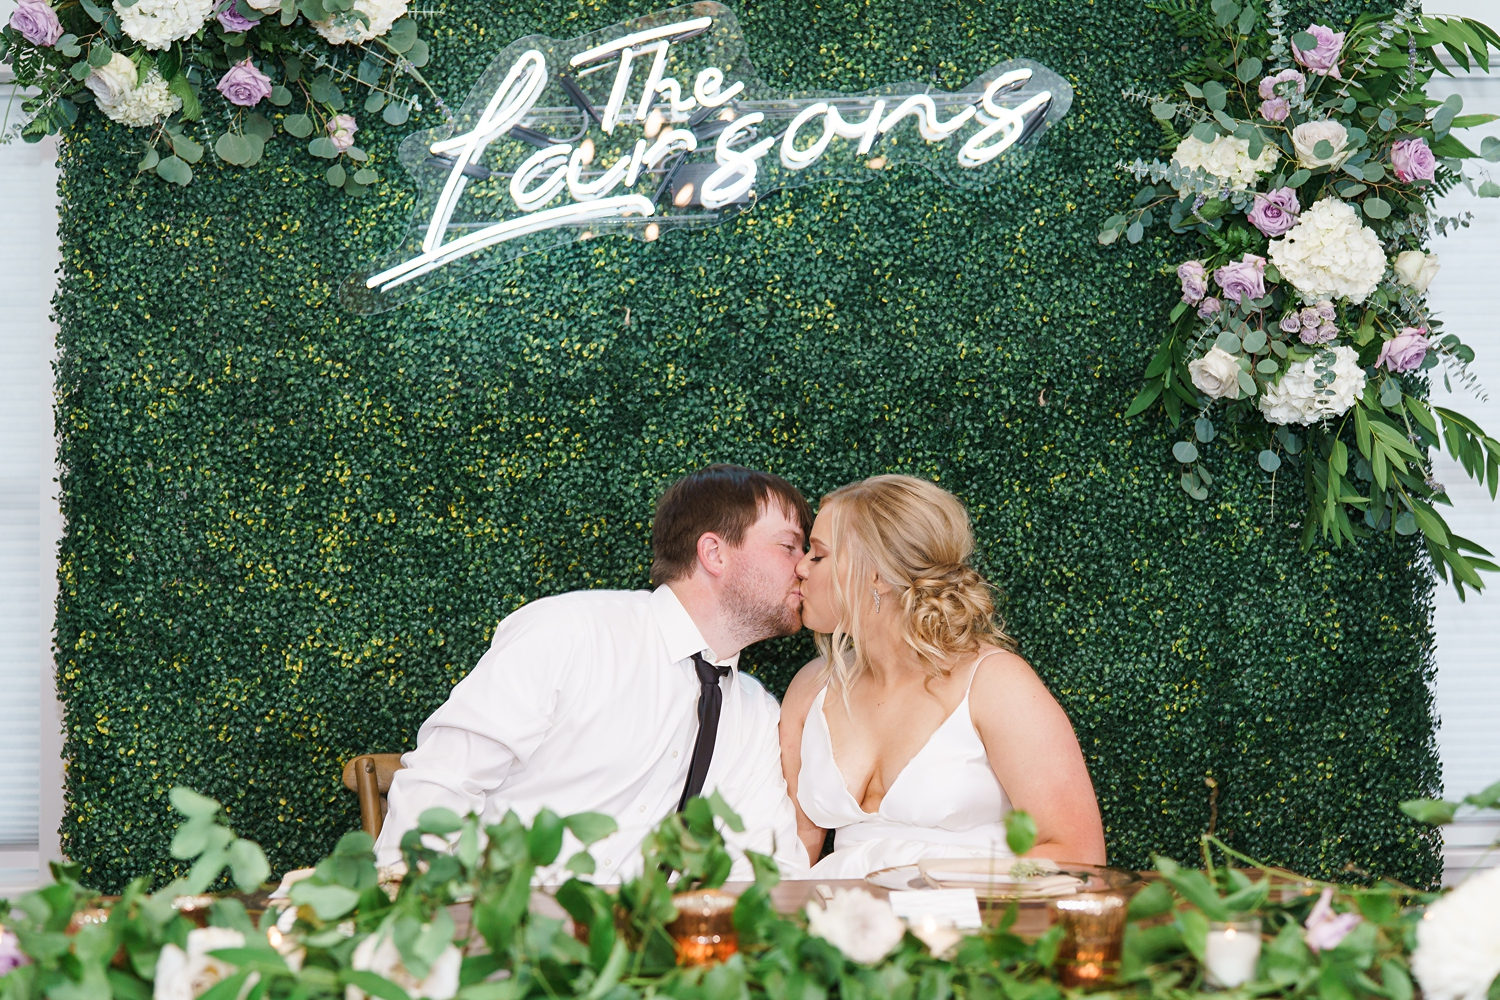 greenery backdrop with neon sign for wedding reception